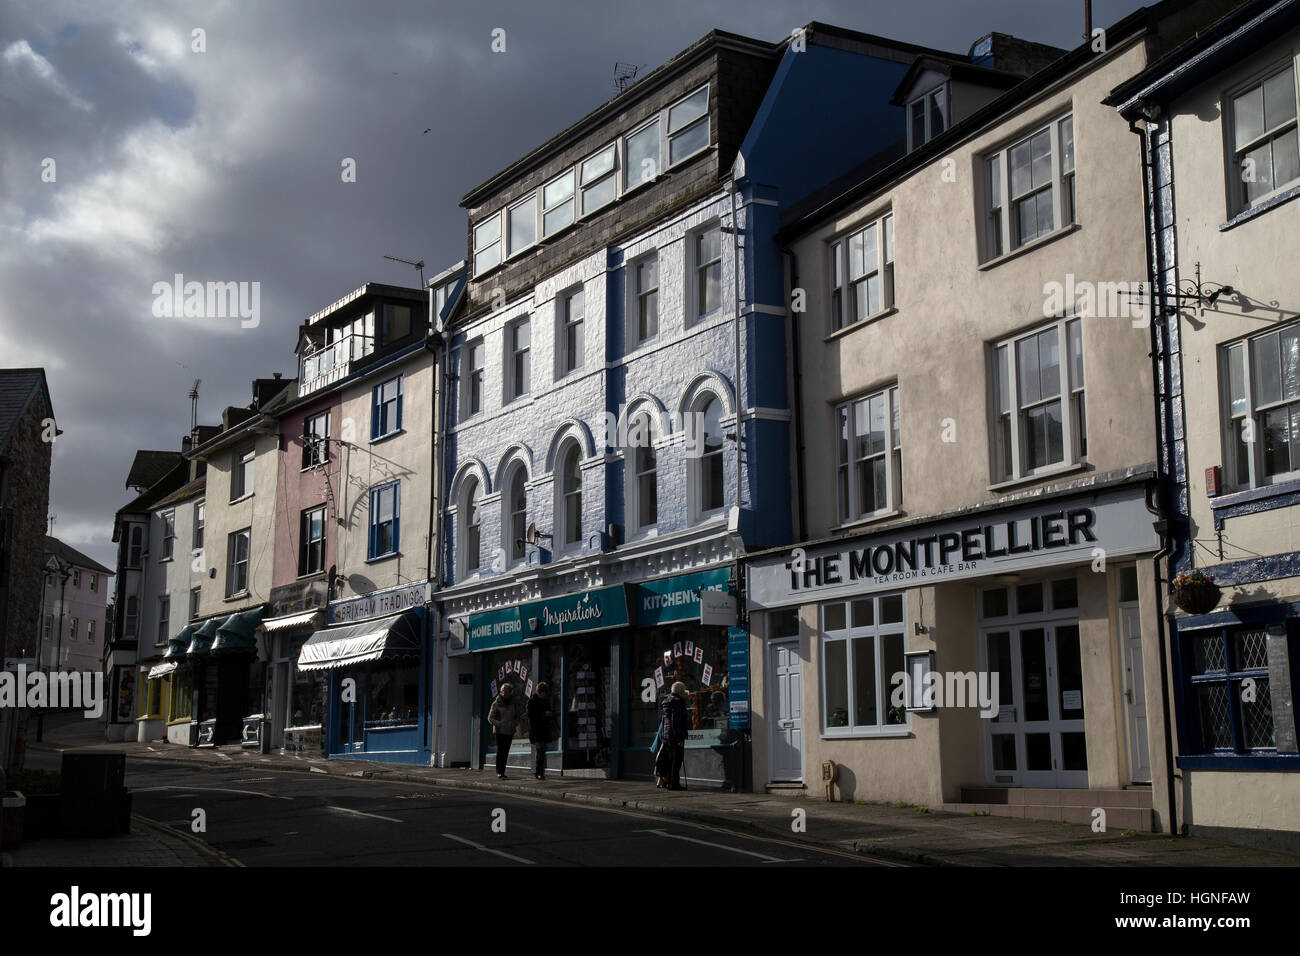 brixham street,high street,retail,holidaymakers,housing, - Stock Image